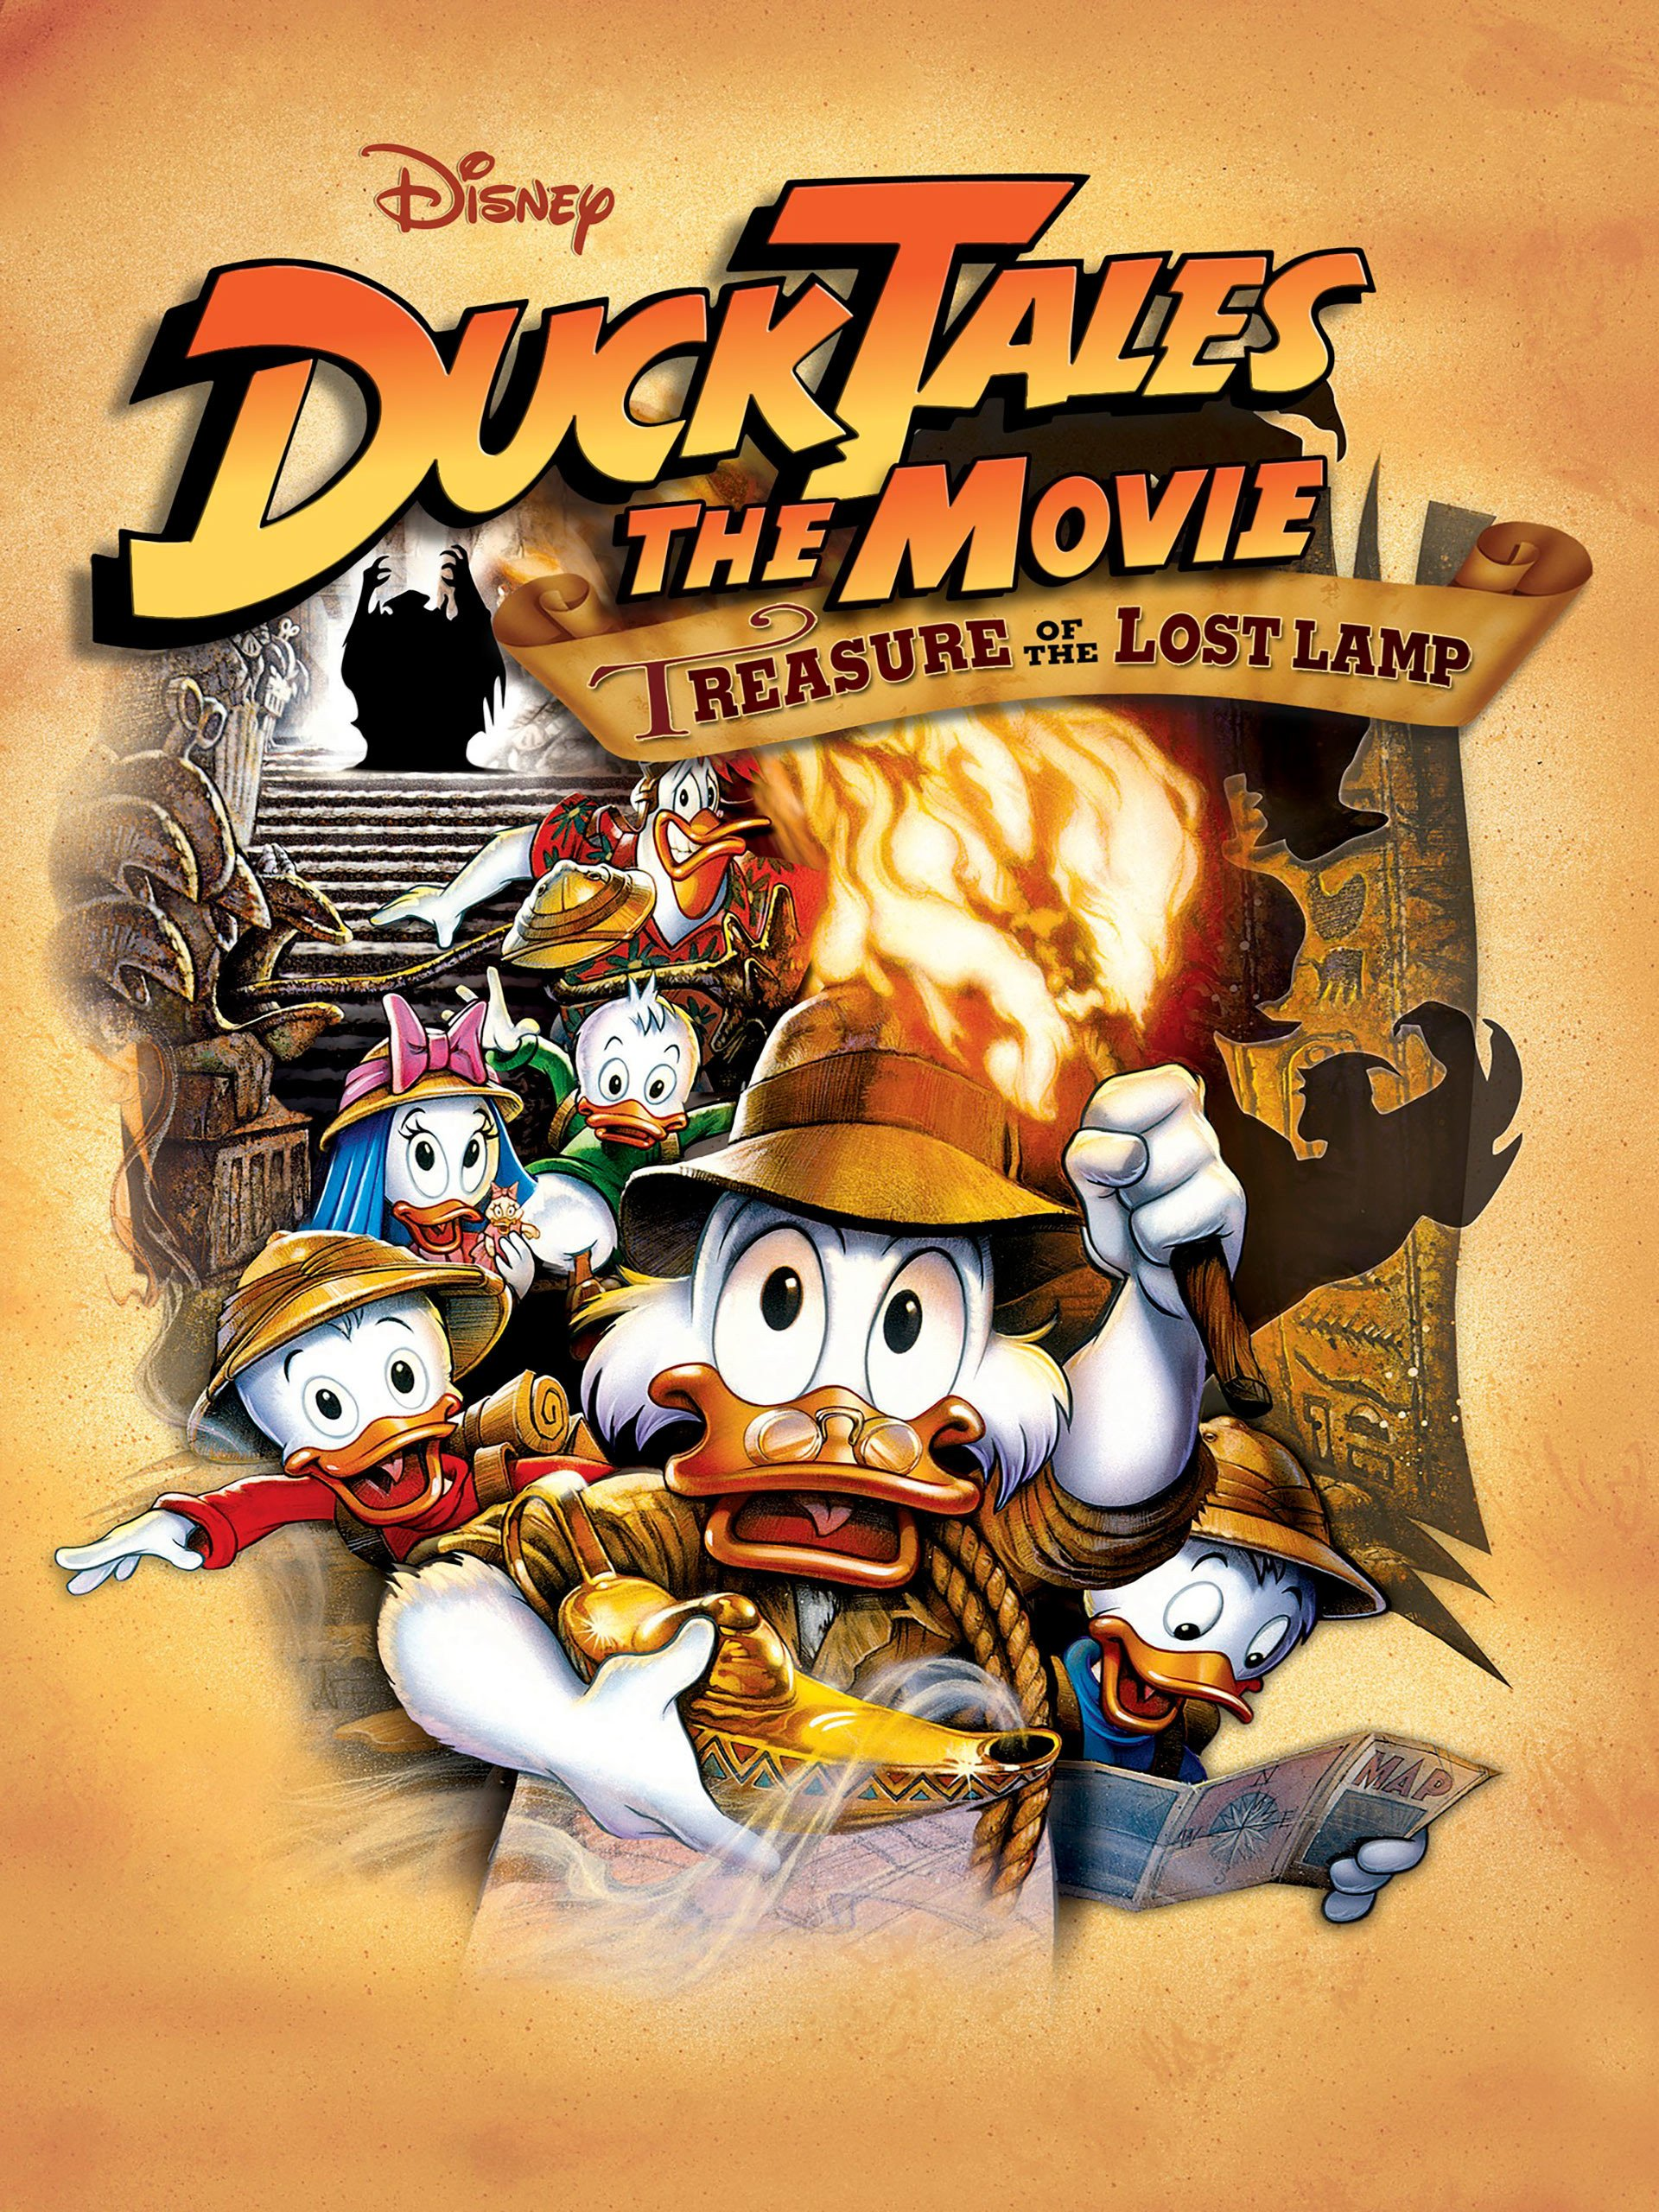 Amazon.com: Watch Ducktales The Movie - Treasure of the Lost Lamp ...